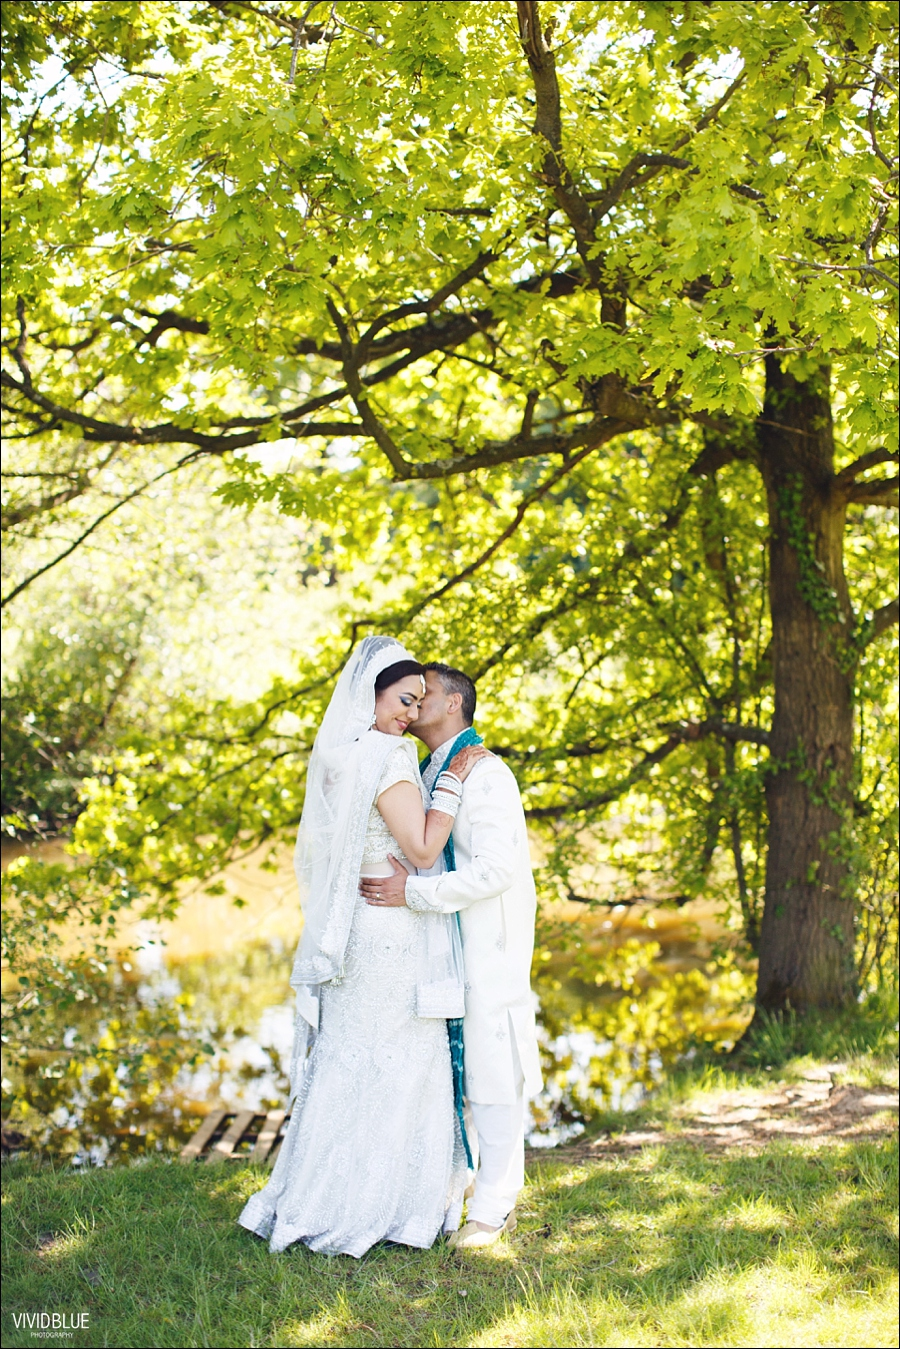 vividblue-Uk-wedding045